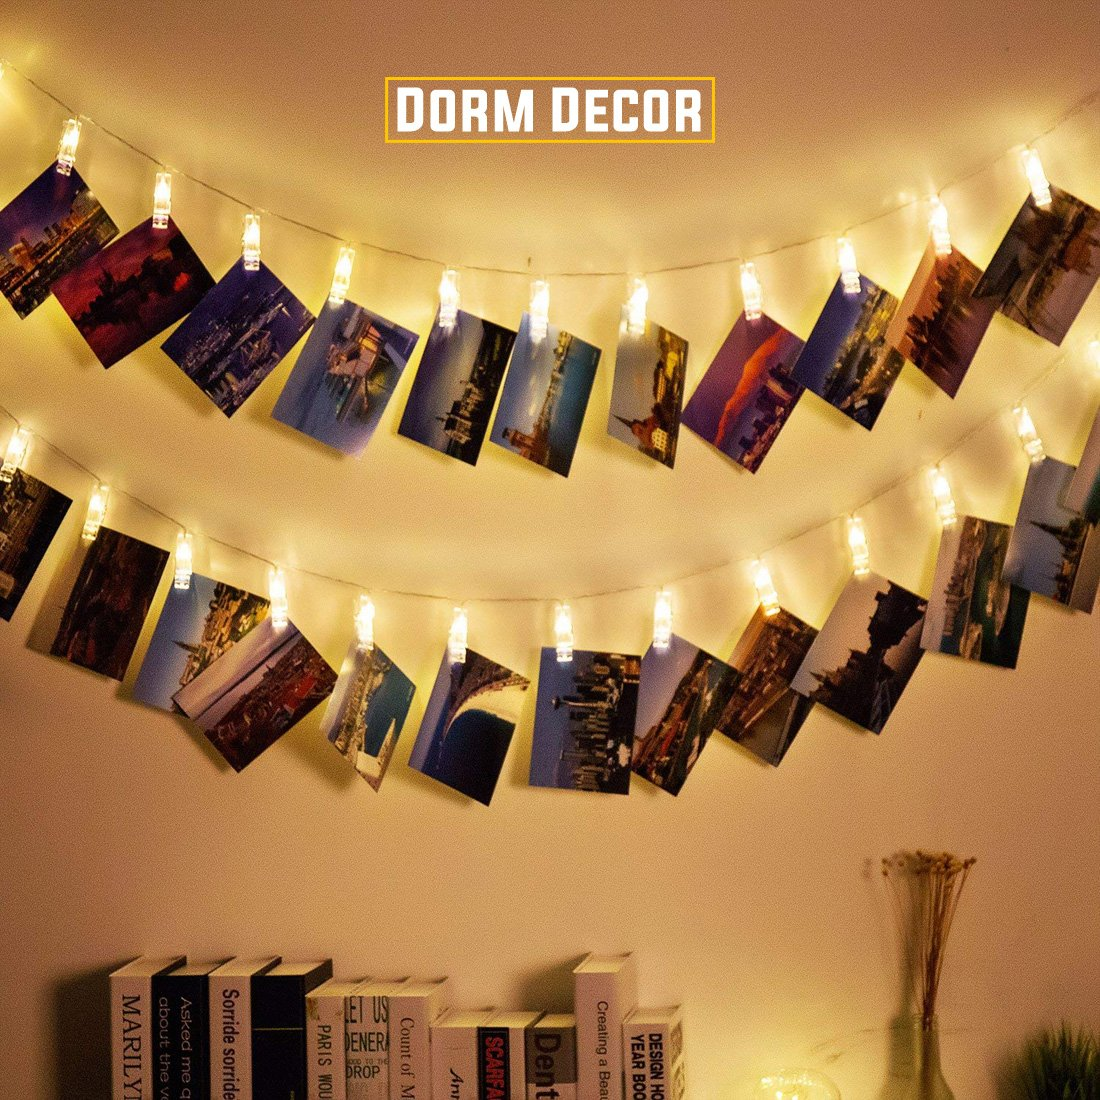 40 LED Photo Clips String Lights – 8 Modes Wall Hanging Clothespin Picture Display Peg Card Holder, Girl Back to School Dorm Room Décor Essential, Birthday Party Halloween Christmas Decorations Gifts by HappyDoggy (Image #2)